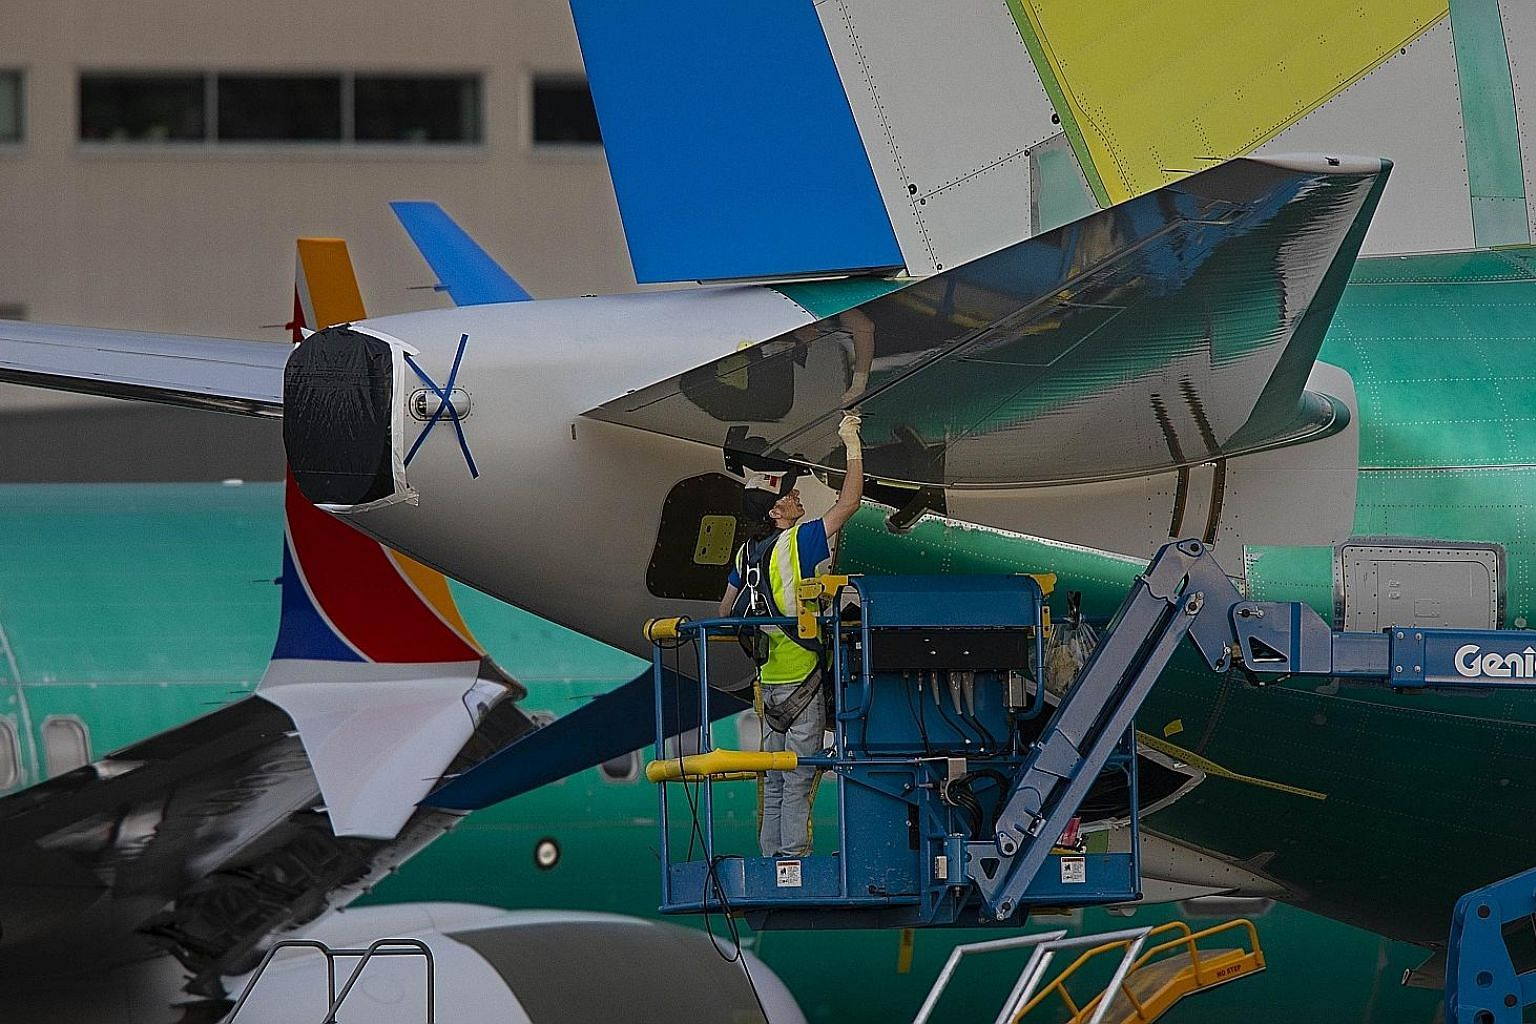 The current issues appear to be confined only to the B-737 Max variant and it could take anything from a few weeks to several months before the model takes to the skies again, experts say. The impact of the crisis, though, on Boeing's reputation and